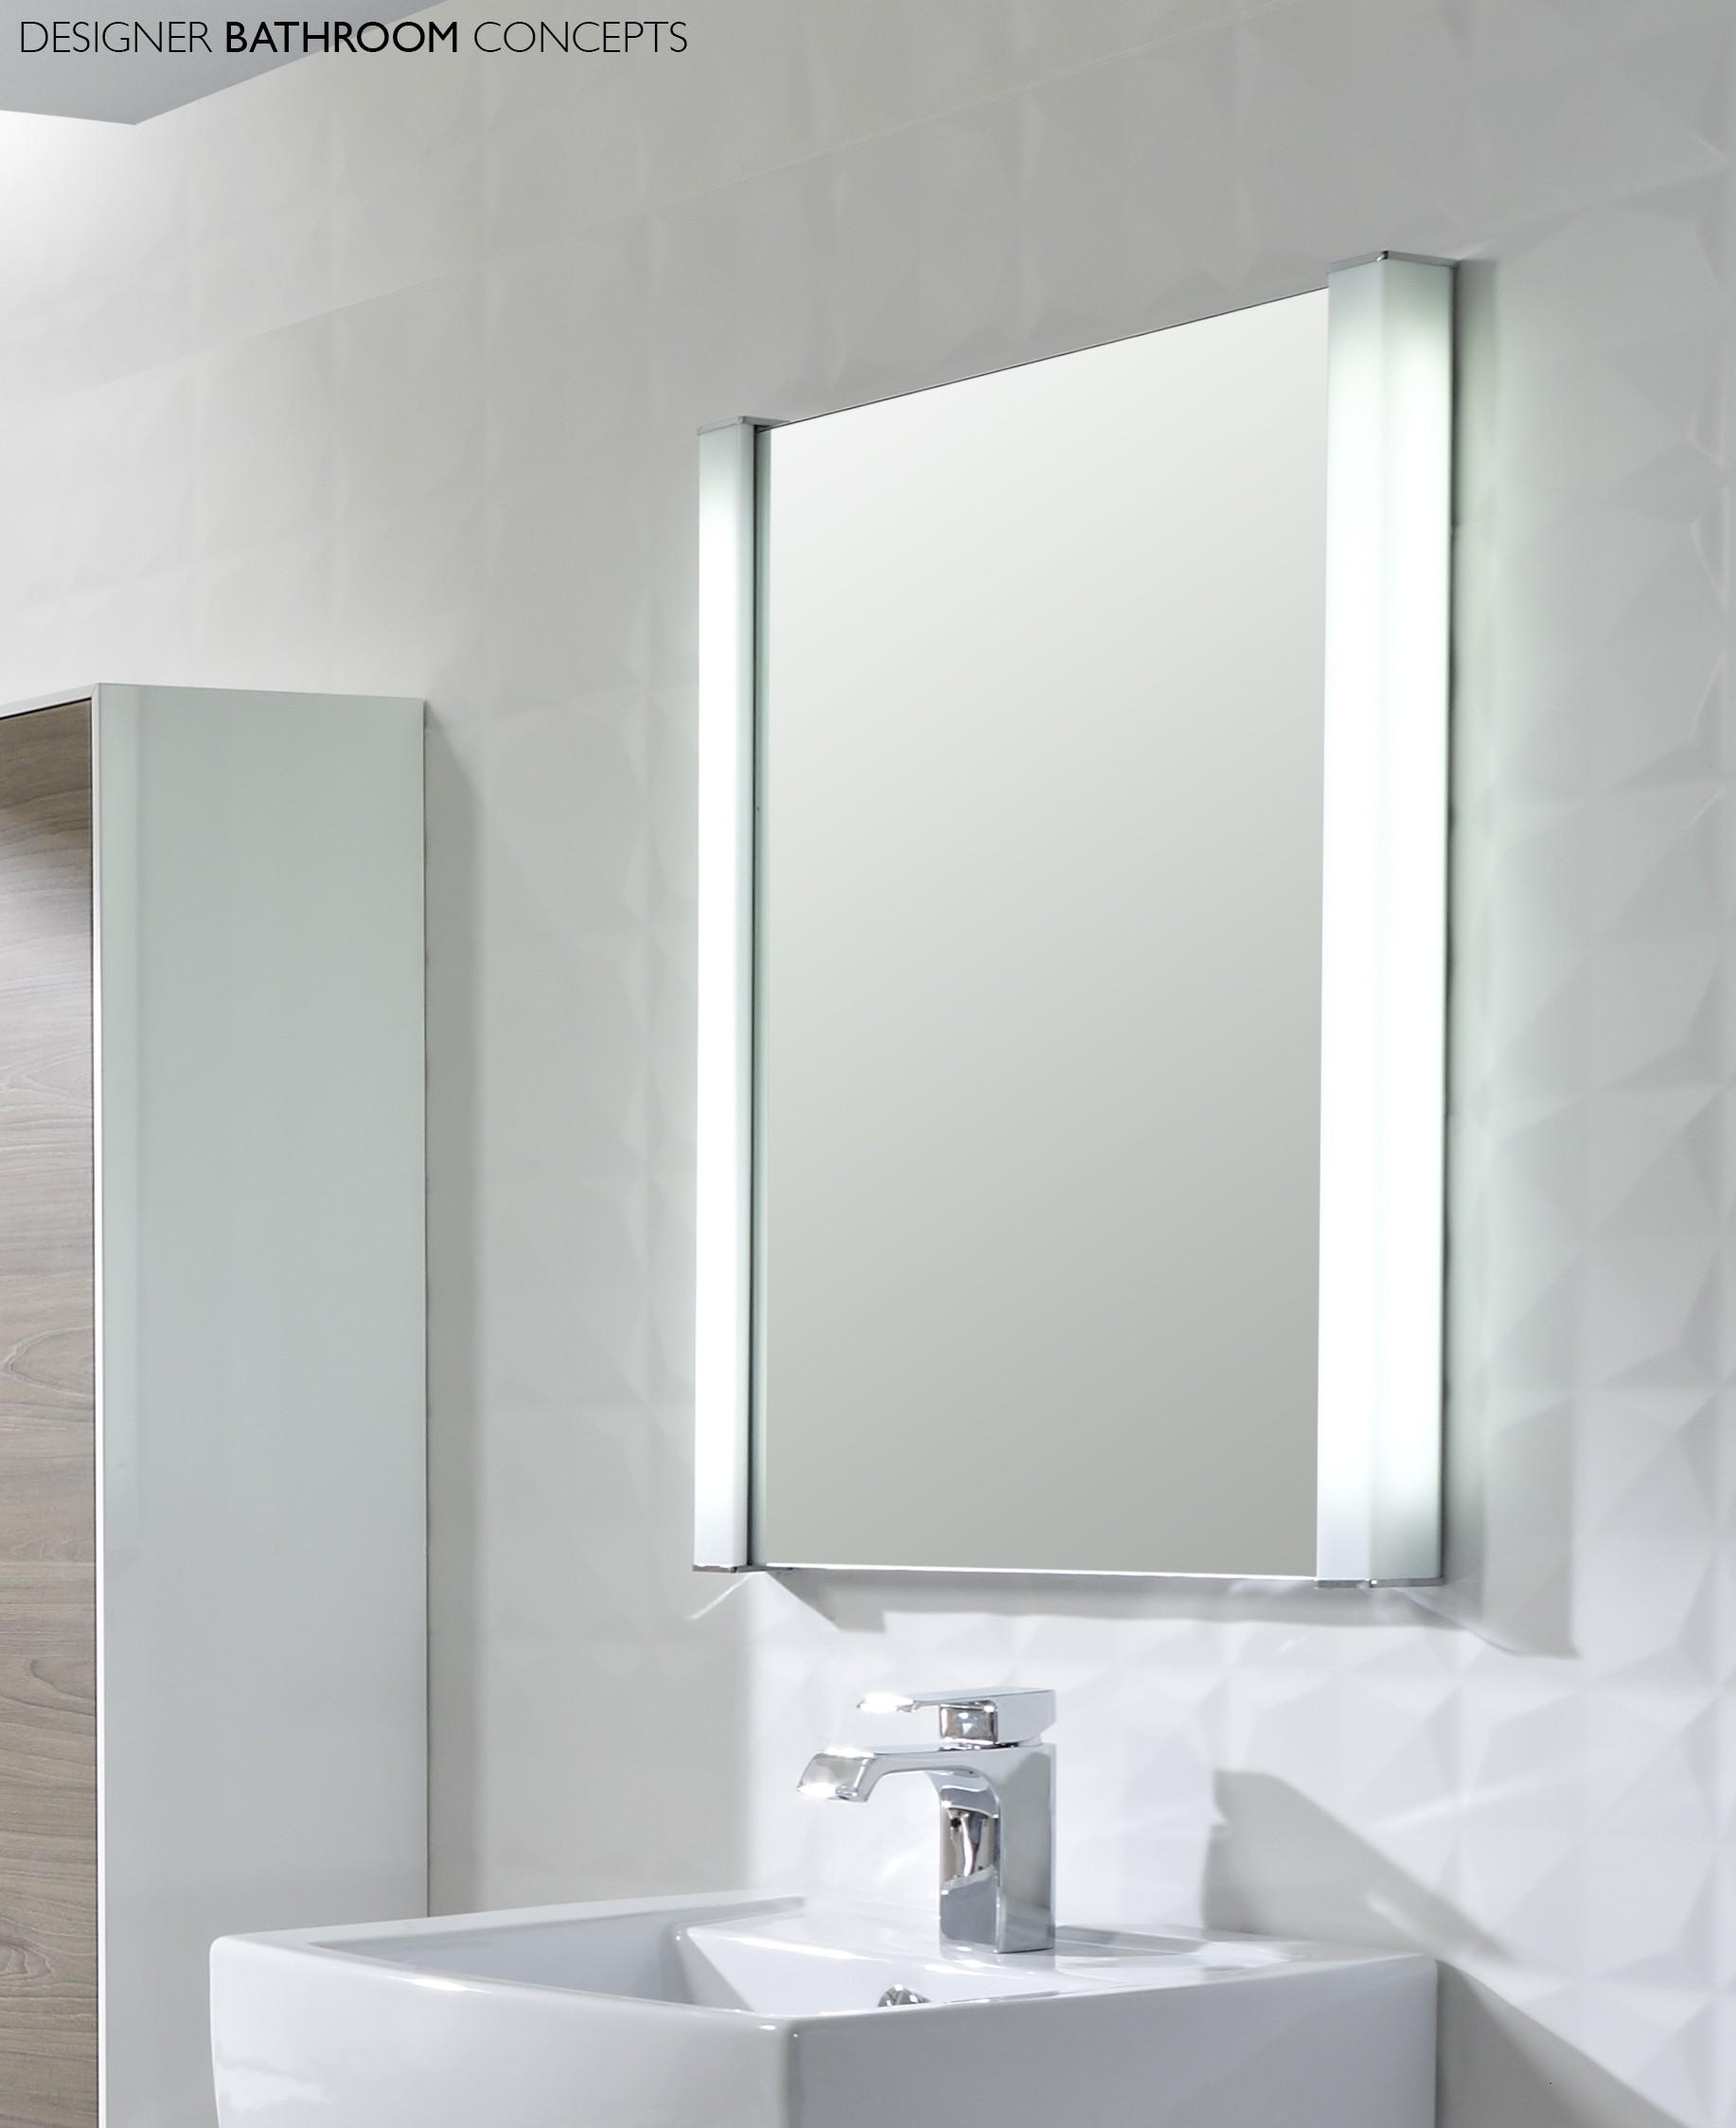 Illuminated Bathroom Mirrors With Demister – Choosing Illuminated For Mirrors With Lights For Bathroom (View 19 of 20)